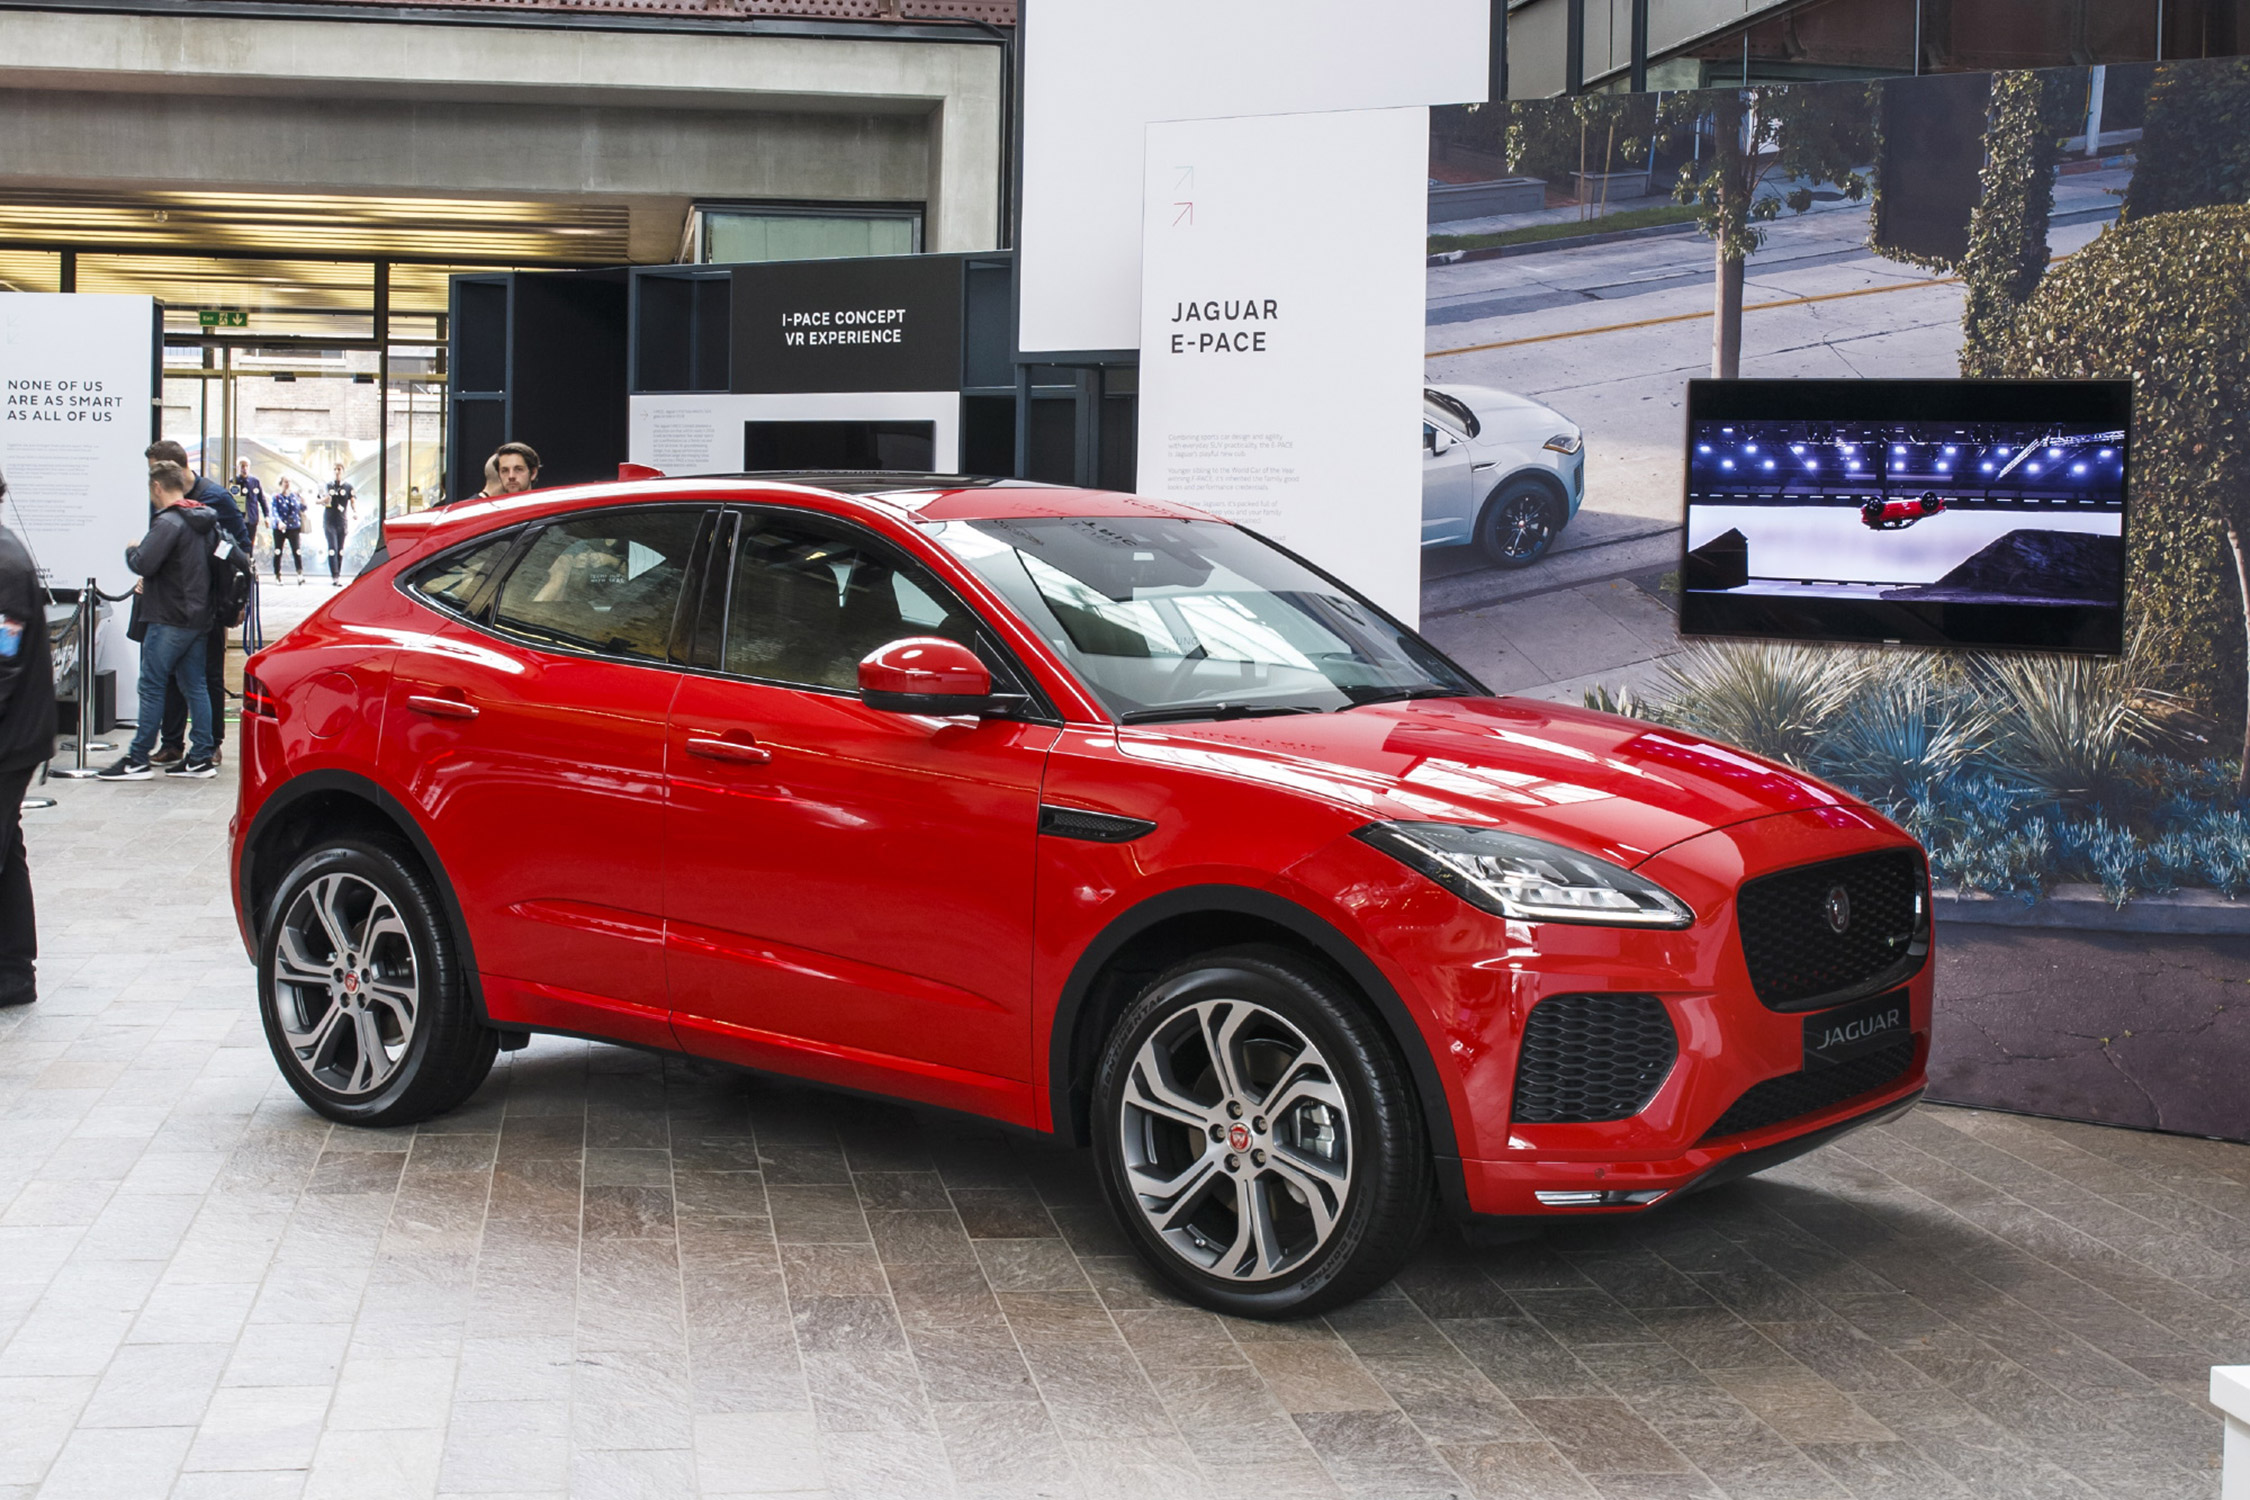 Jaguar e pace salon de francfort 2017 for Interieur jaguar f pace